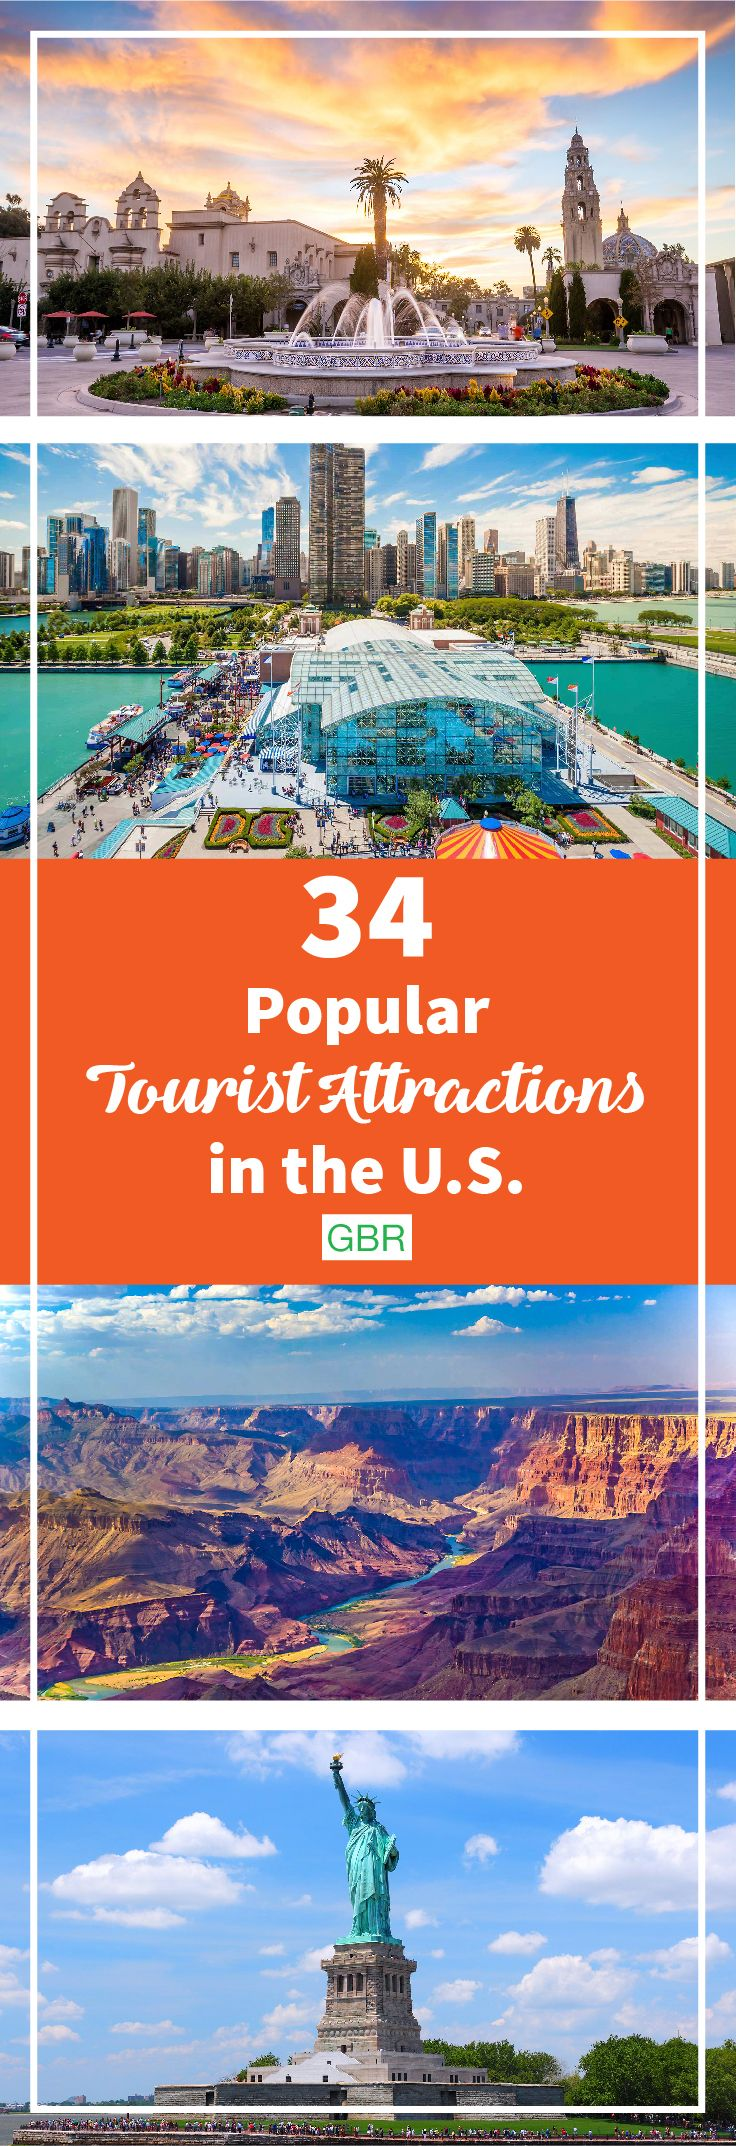 Planning a vacation within the U.S.? Don't miss these popular tourist attractions while traveling! They're actually worth your time.